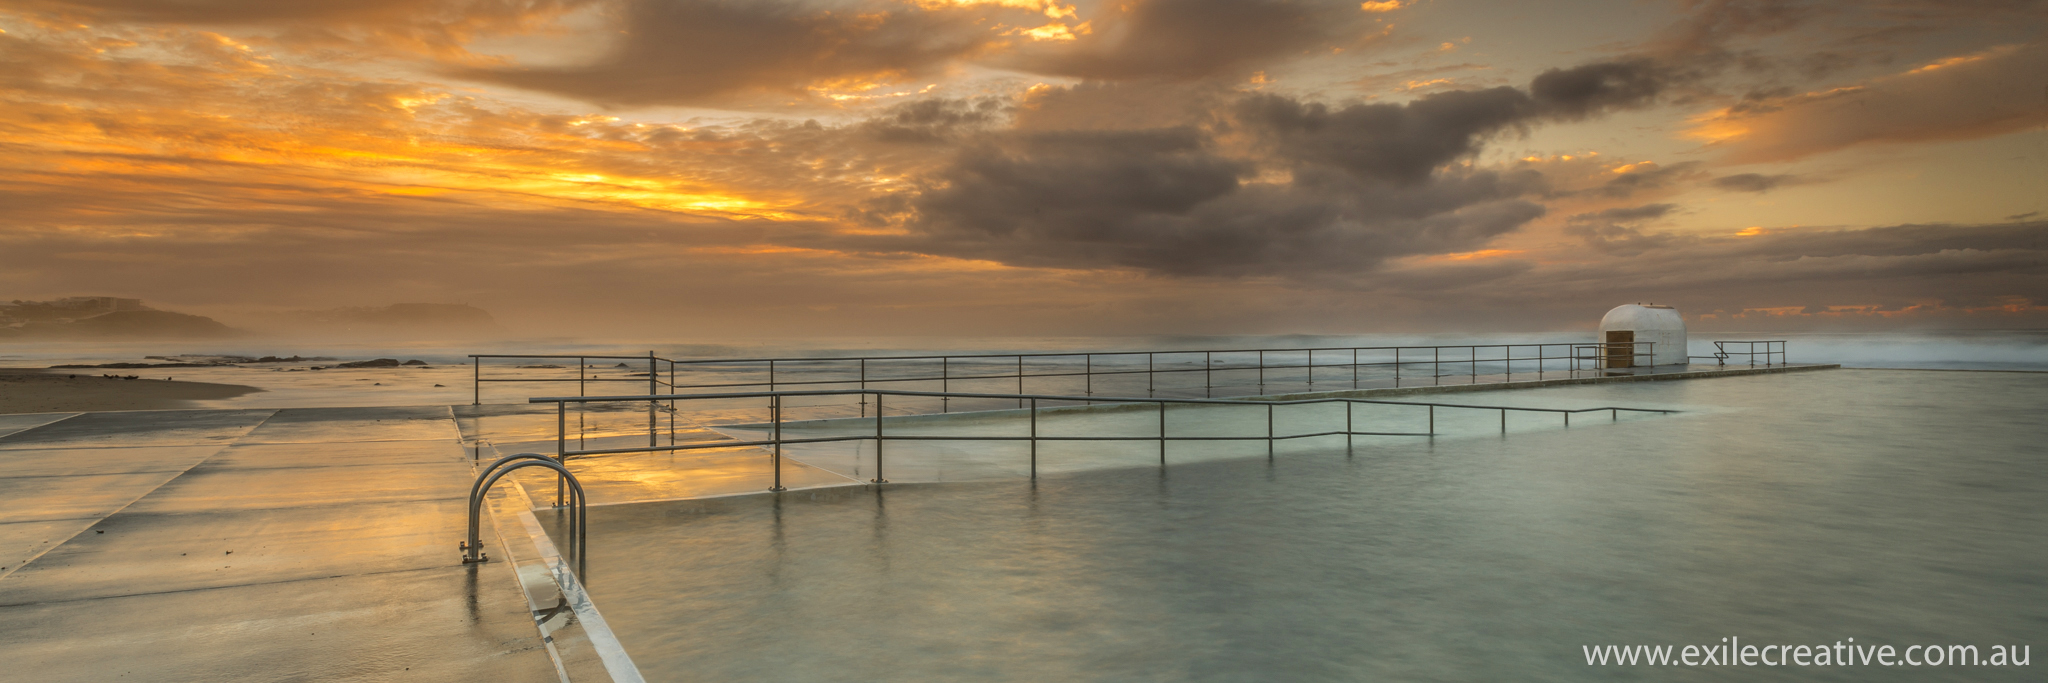 Sunrise at Merewether